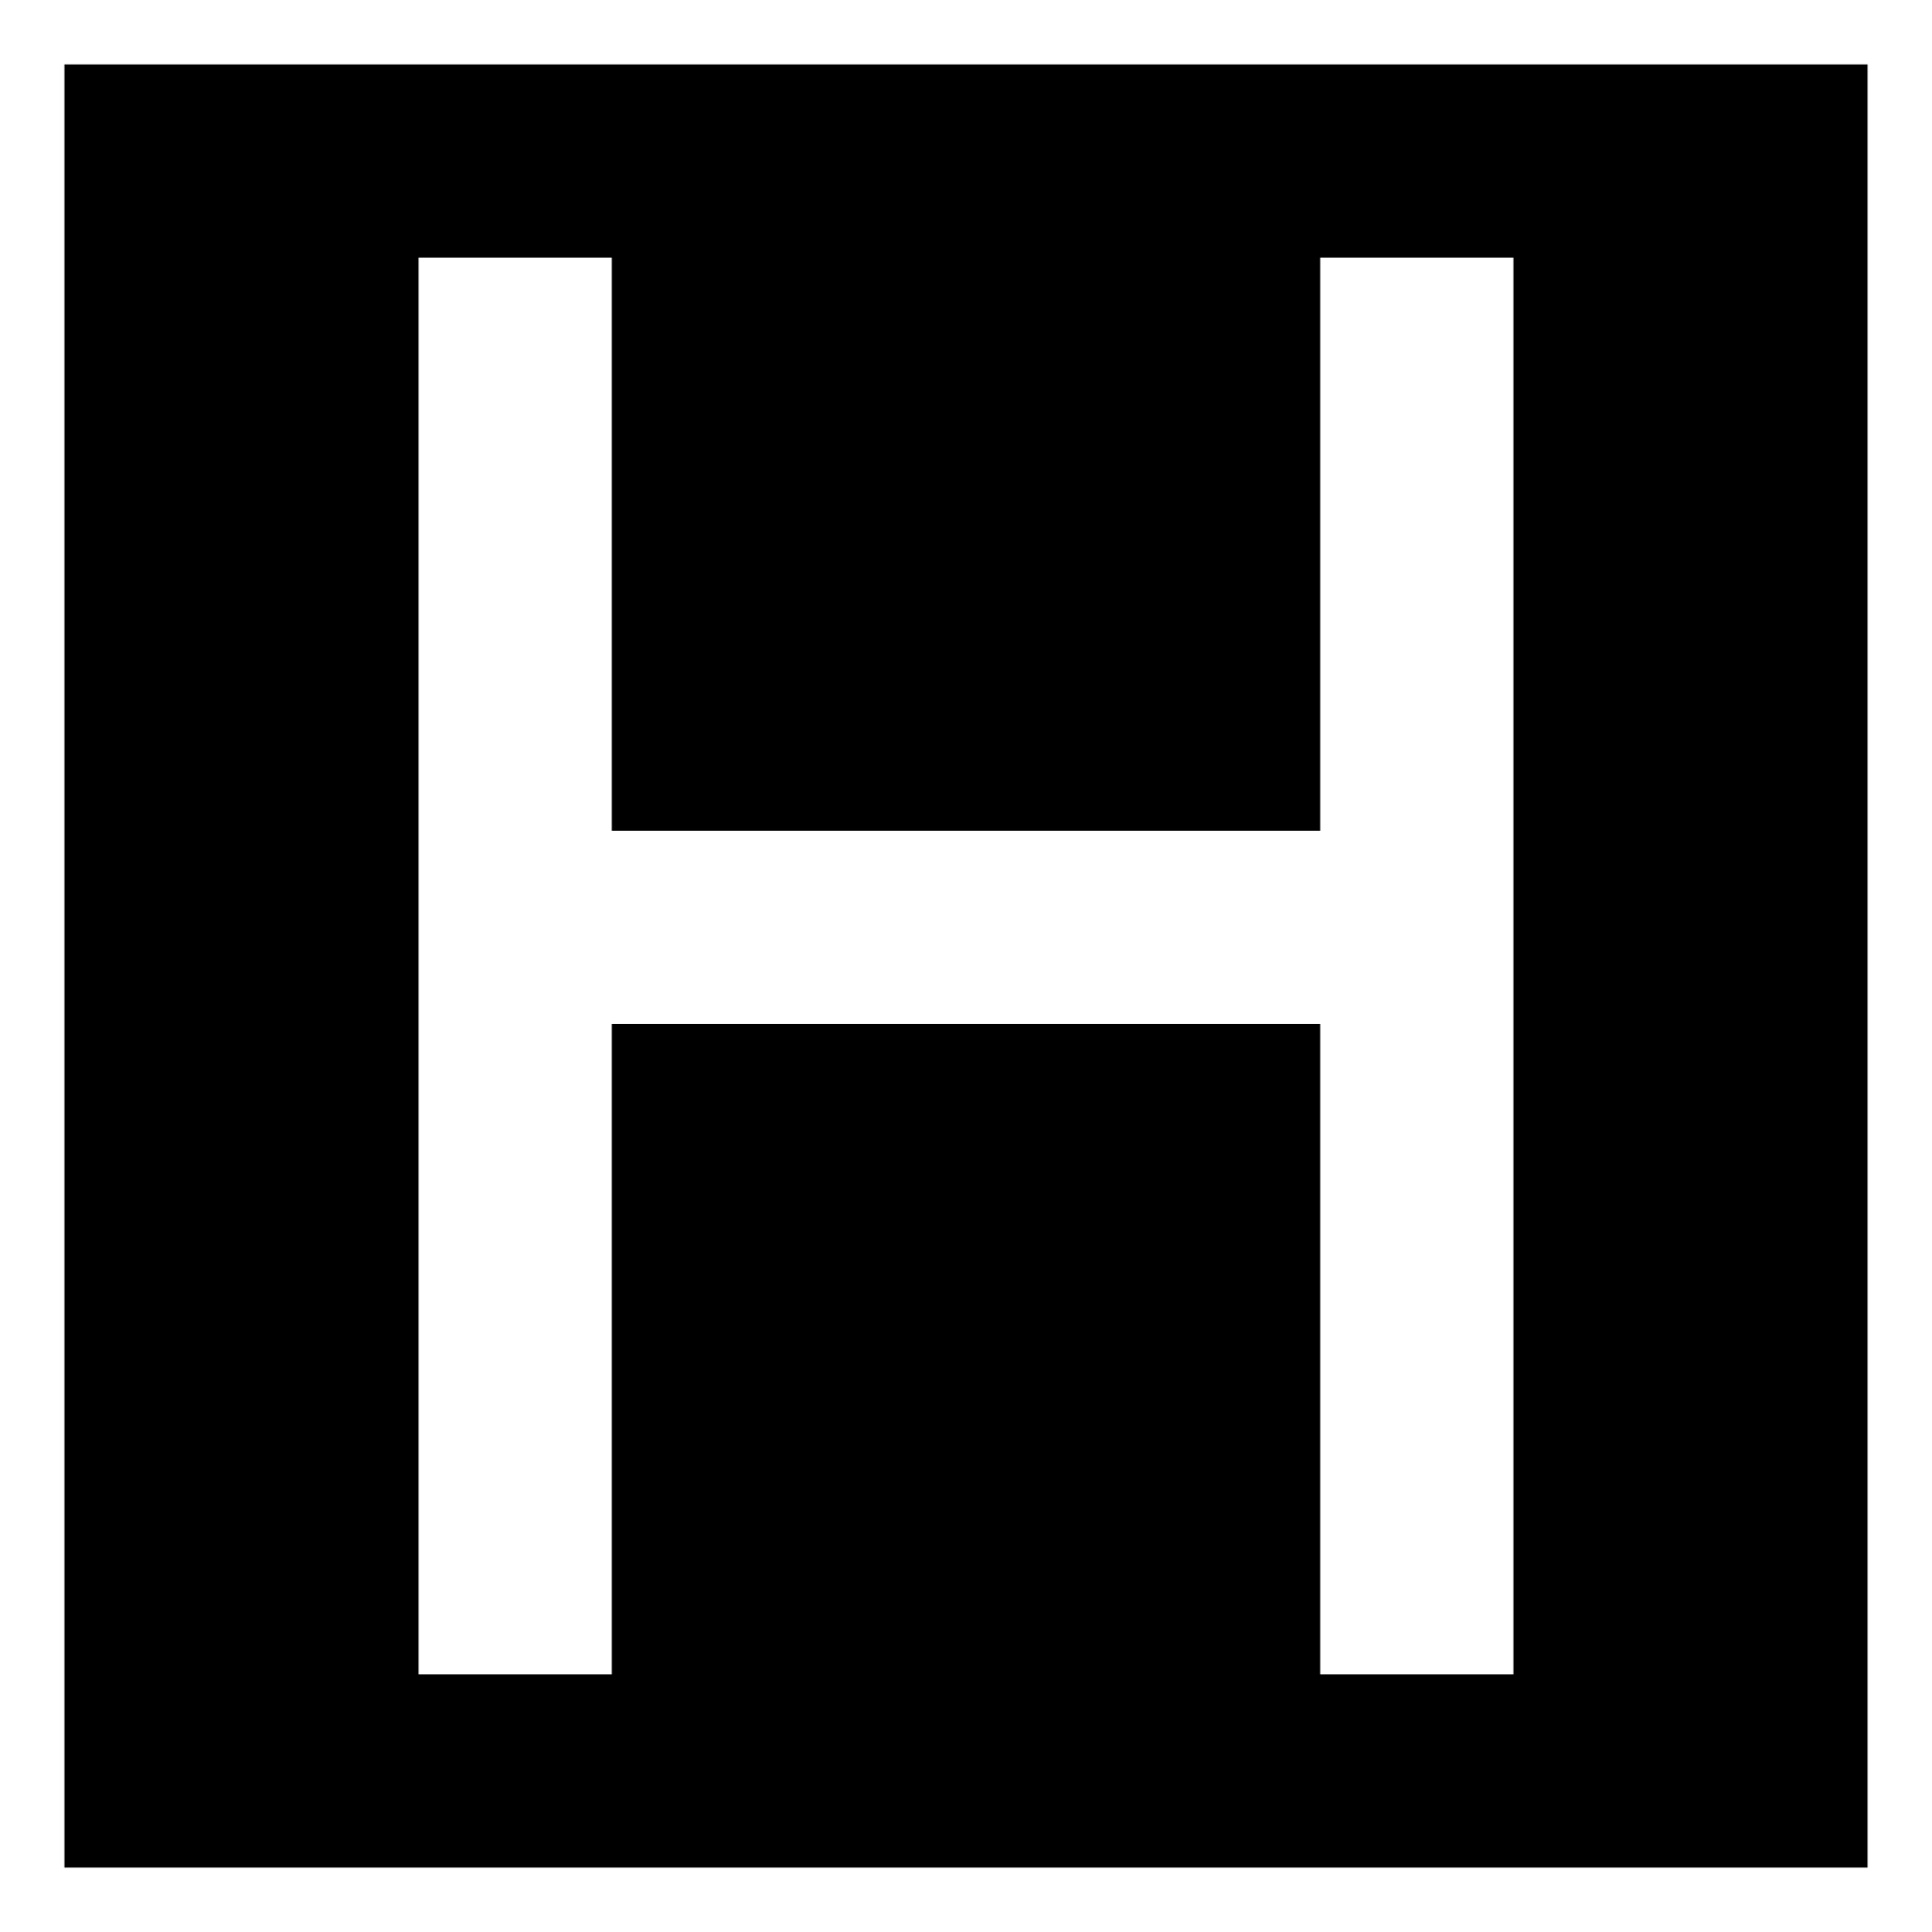 H vector stylized. File letter in white